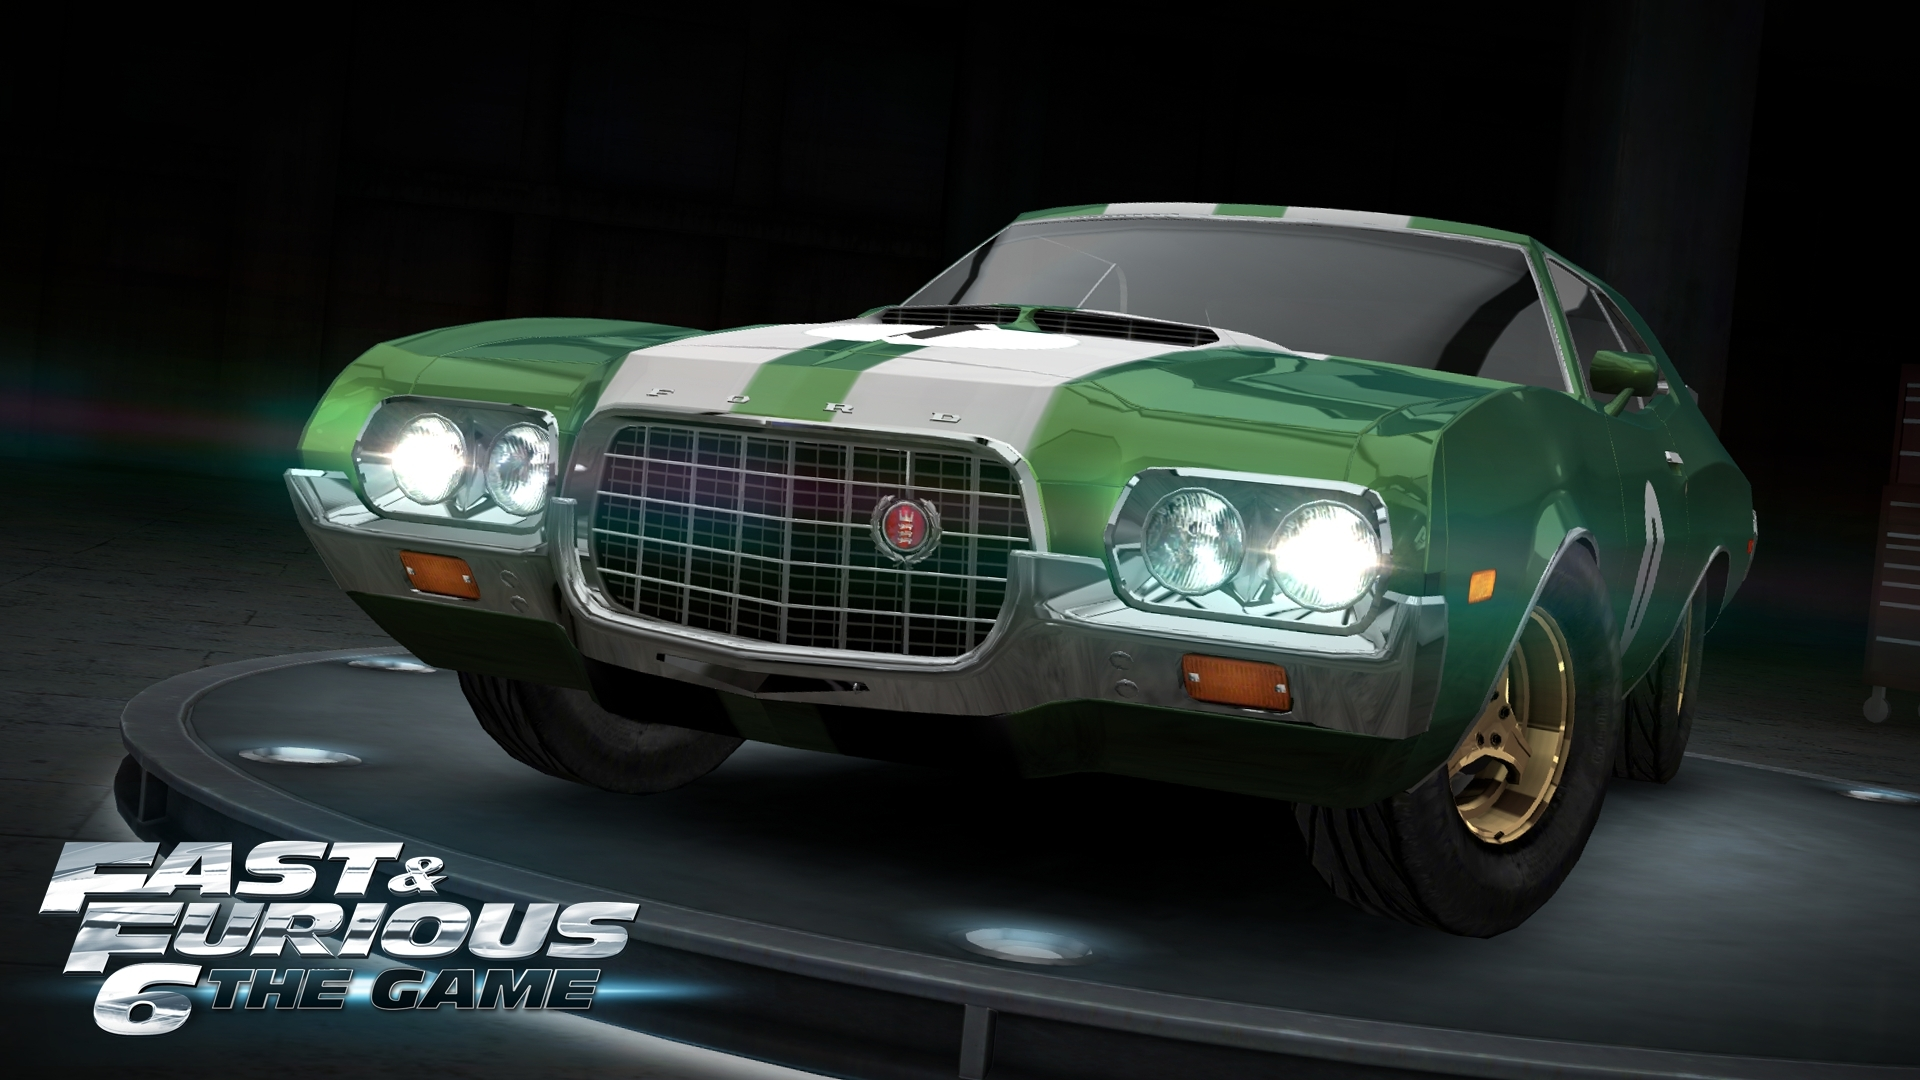 Hot rod rods classic muscle 1972 ford torino fast furious f wallpaper 1920x1080 174448 wallpaperup